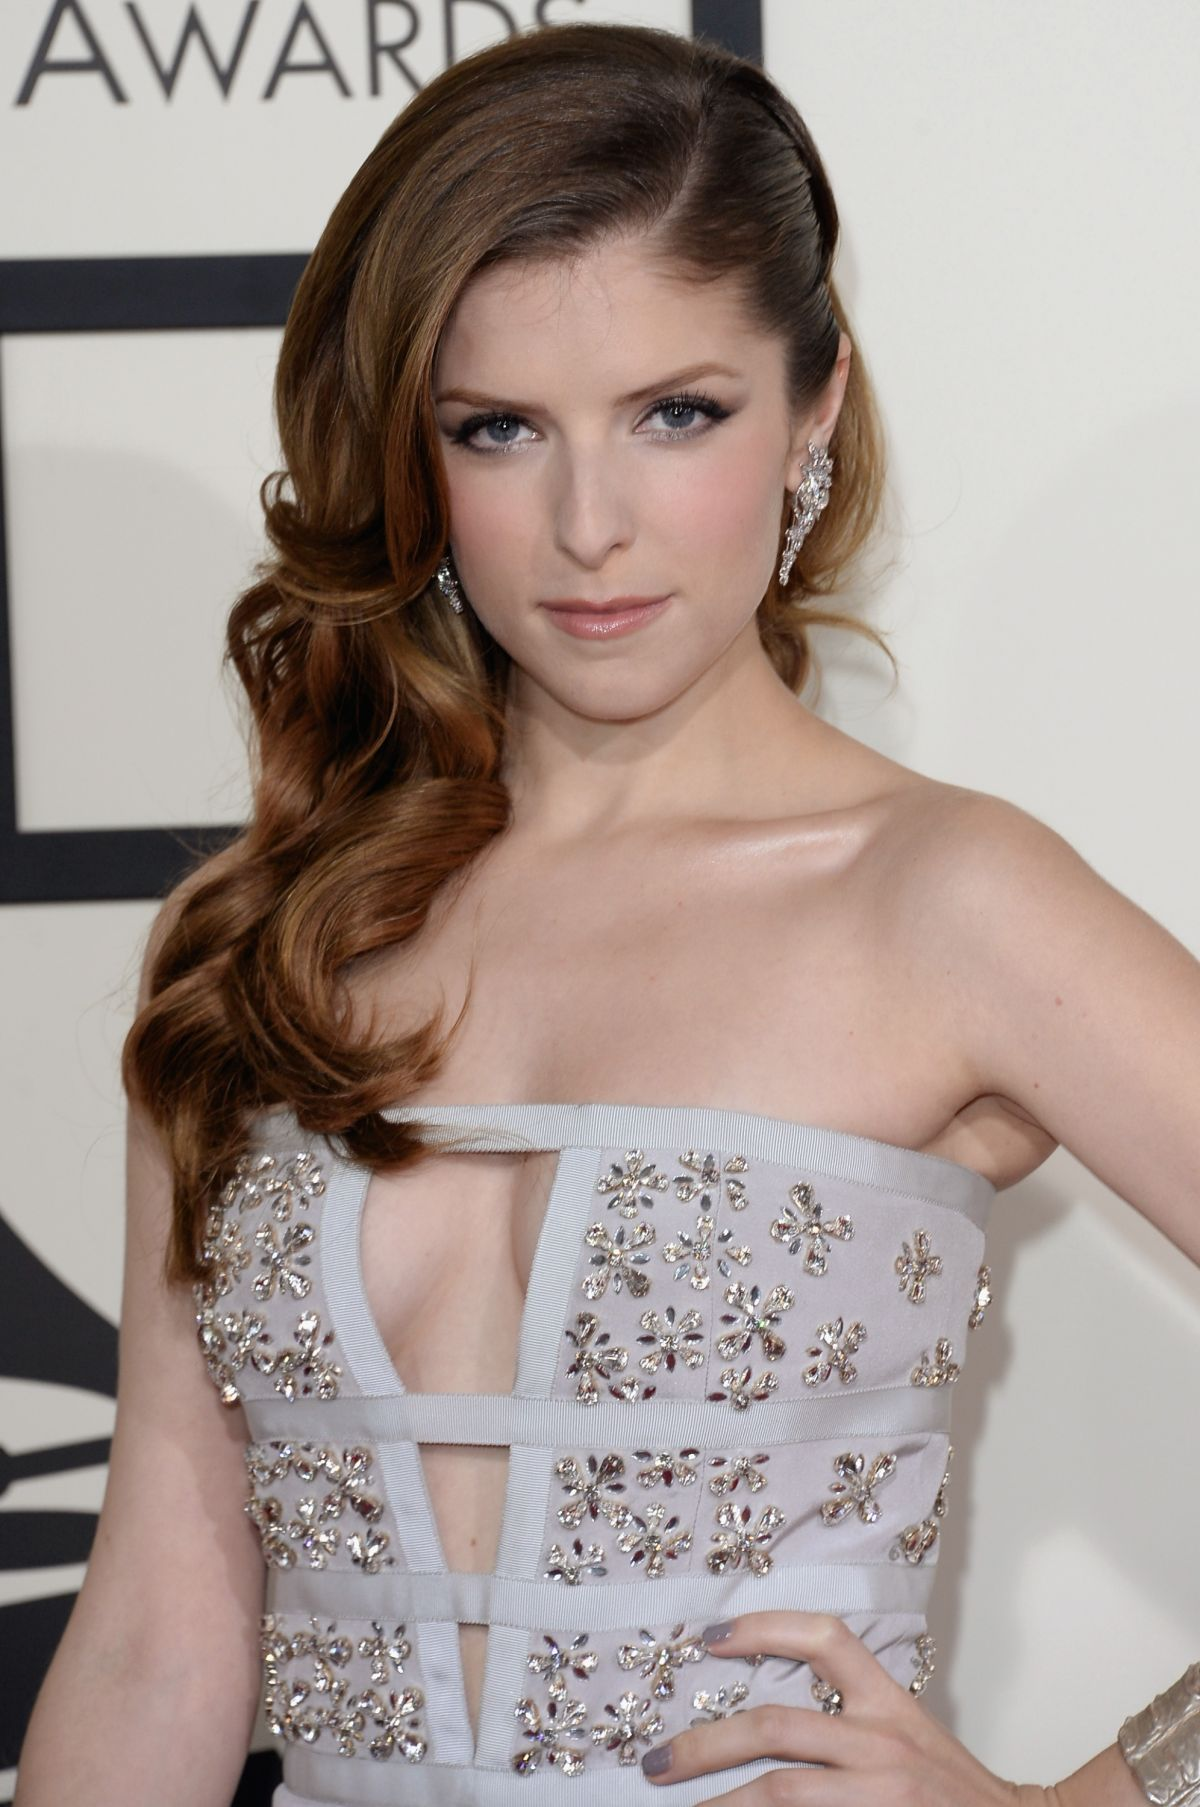 Anna Kendrick At The 56th Annual GRAMMY Awards - Celebzz ... Anna Kendrick